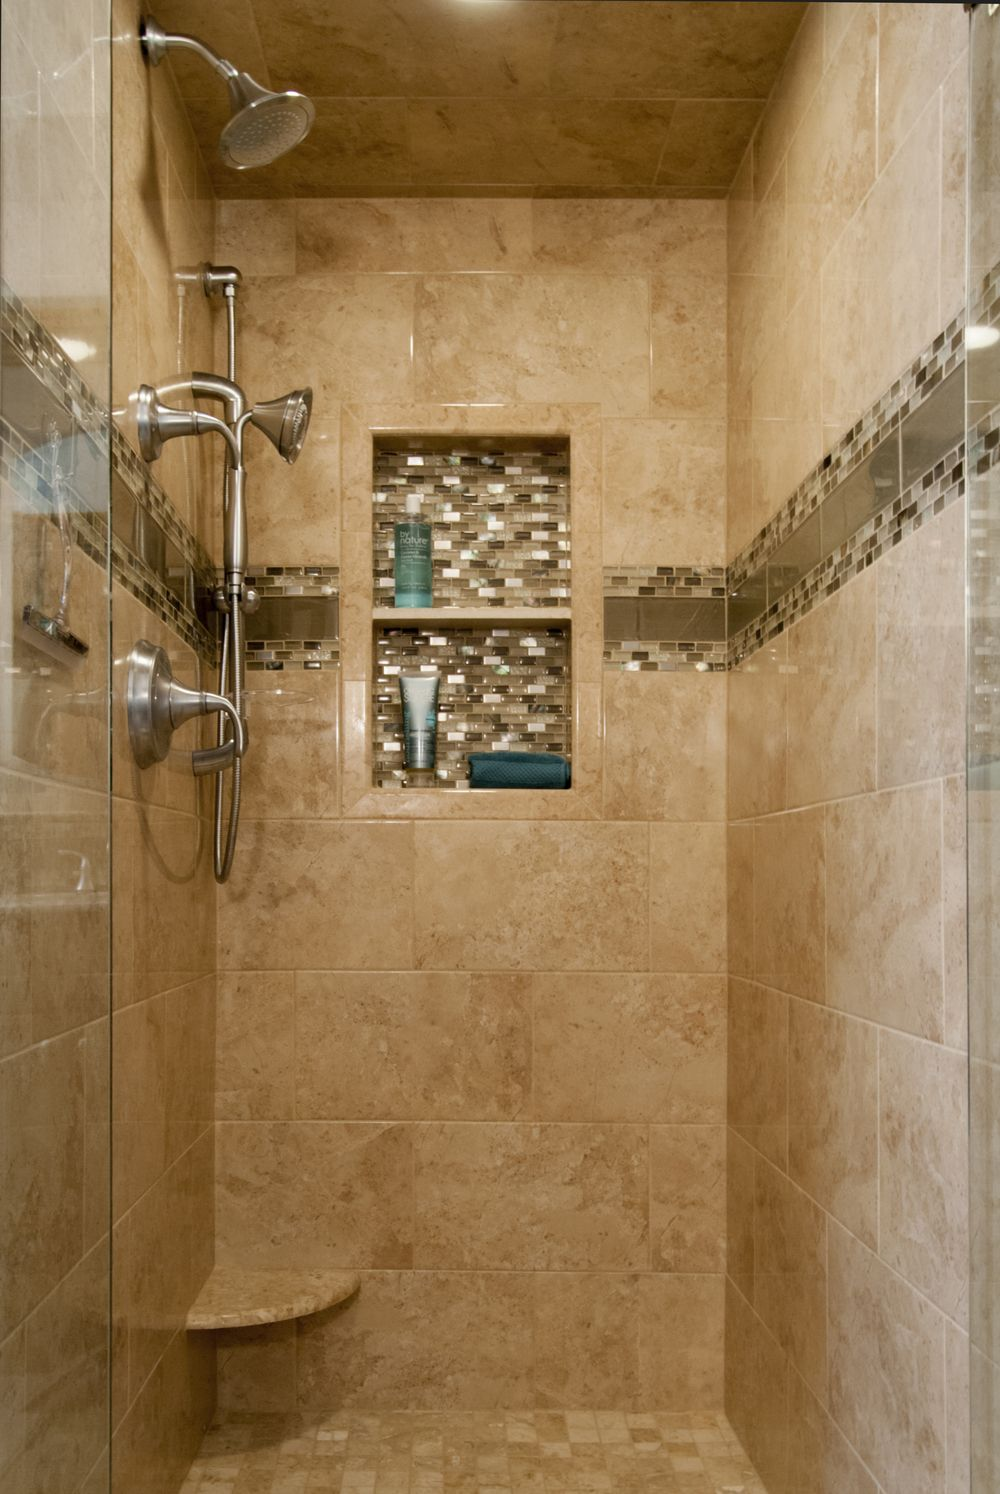 Recessed Shower Niches | Pinterest | Shower niche, Future house and ...